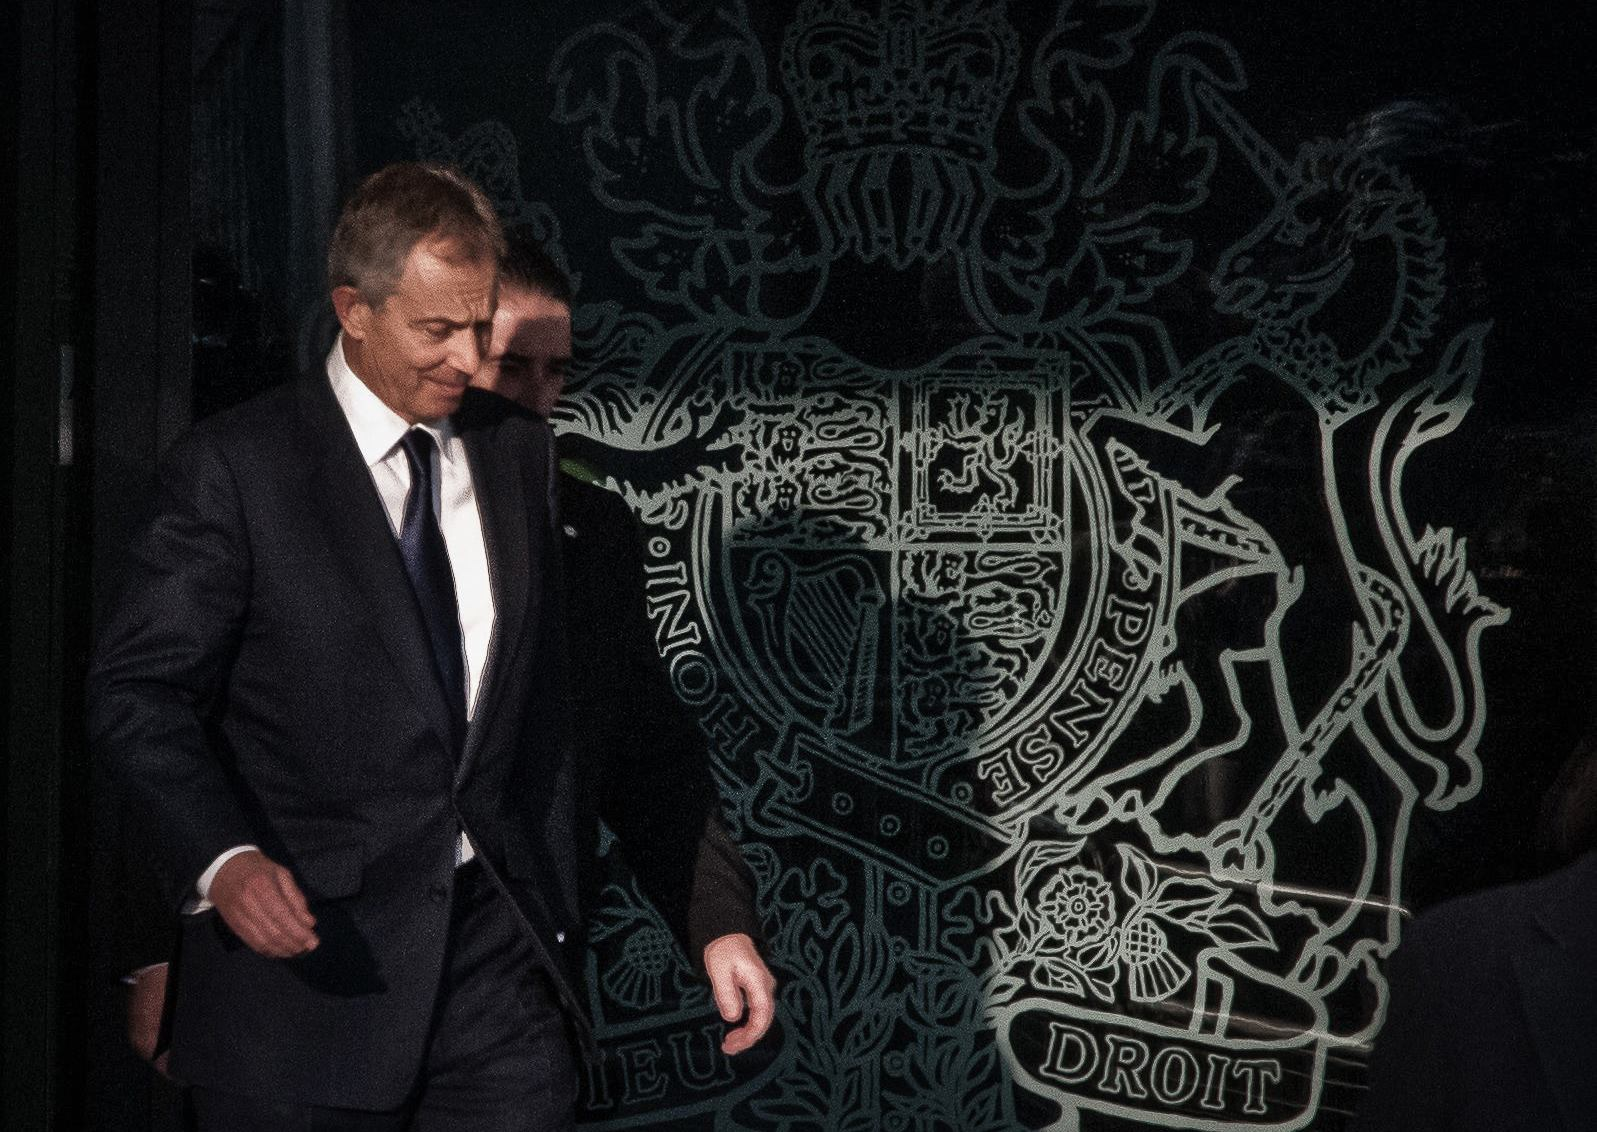 Tony Blair exiting war tribunal